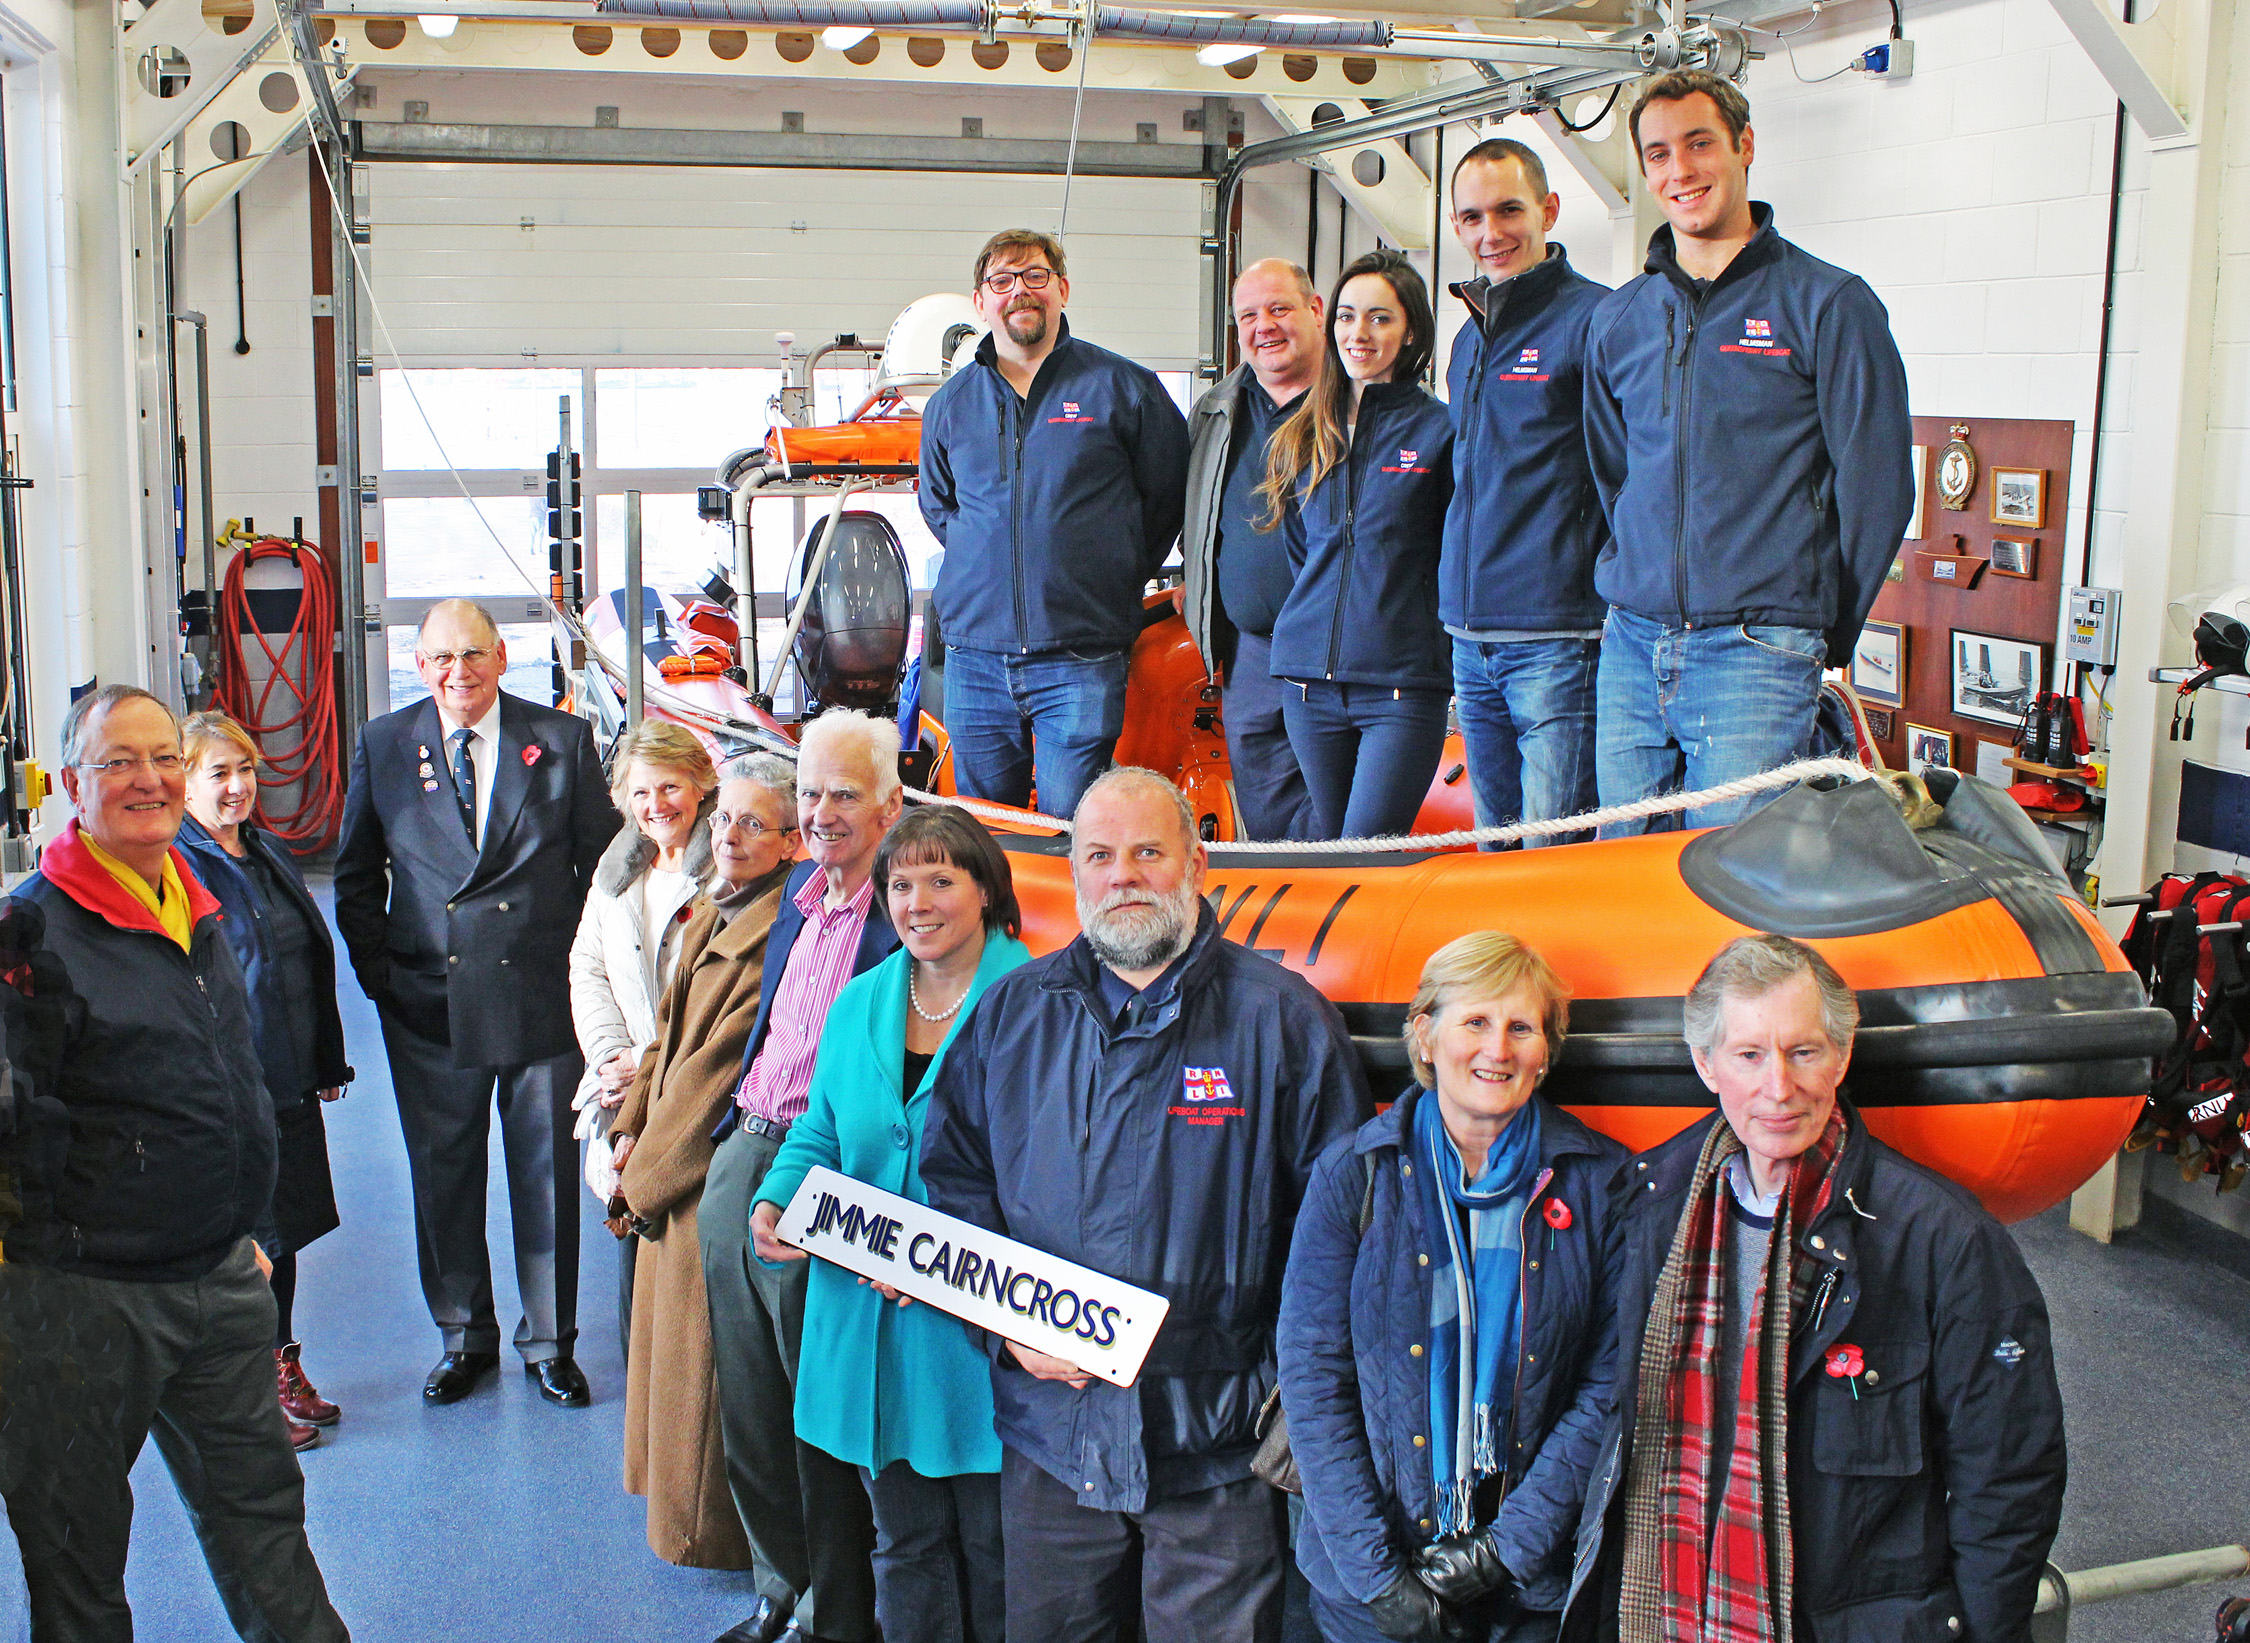 Representatives of RNLI Queensferry Lifeboat Station, along with Trustees from the Jimmie Cairncross Charitable Trust in the boatshed at Queensferry Lifeboat Station. Pictured with Atlantic 85 Jimmie Cairncross inshore lifeboat.